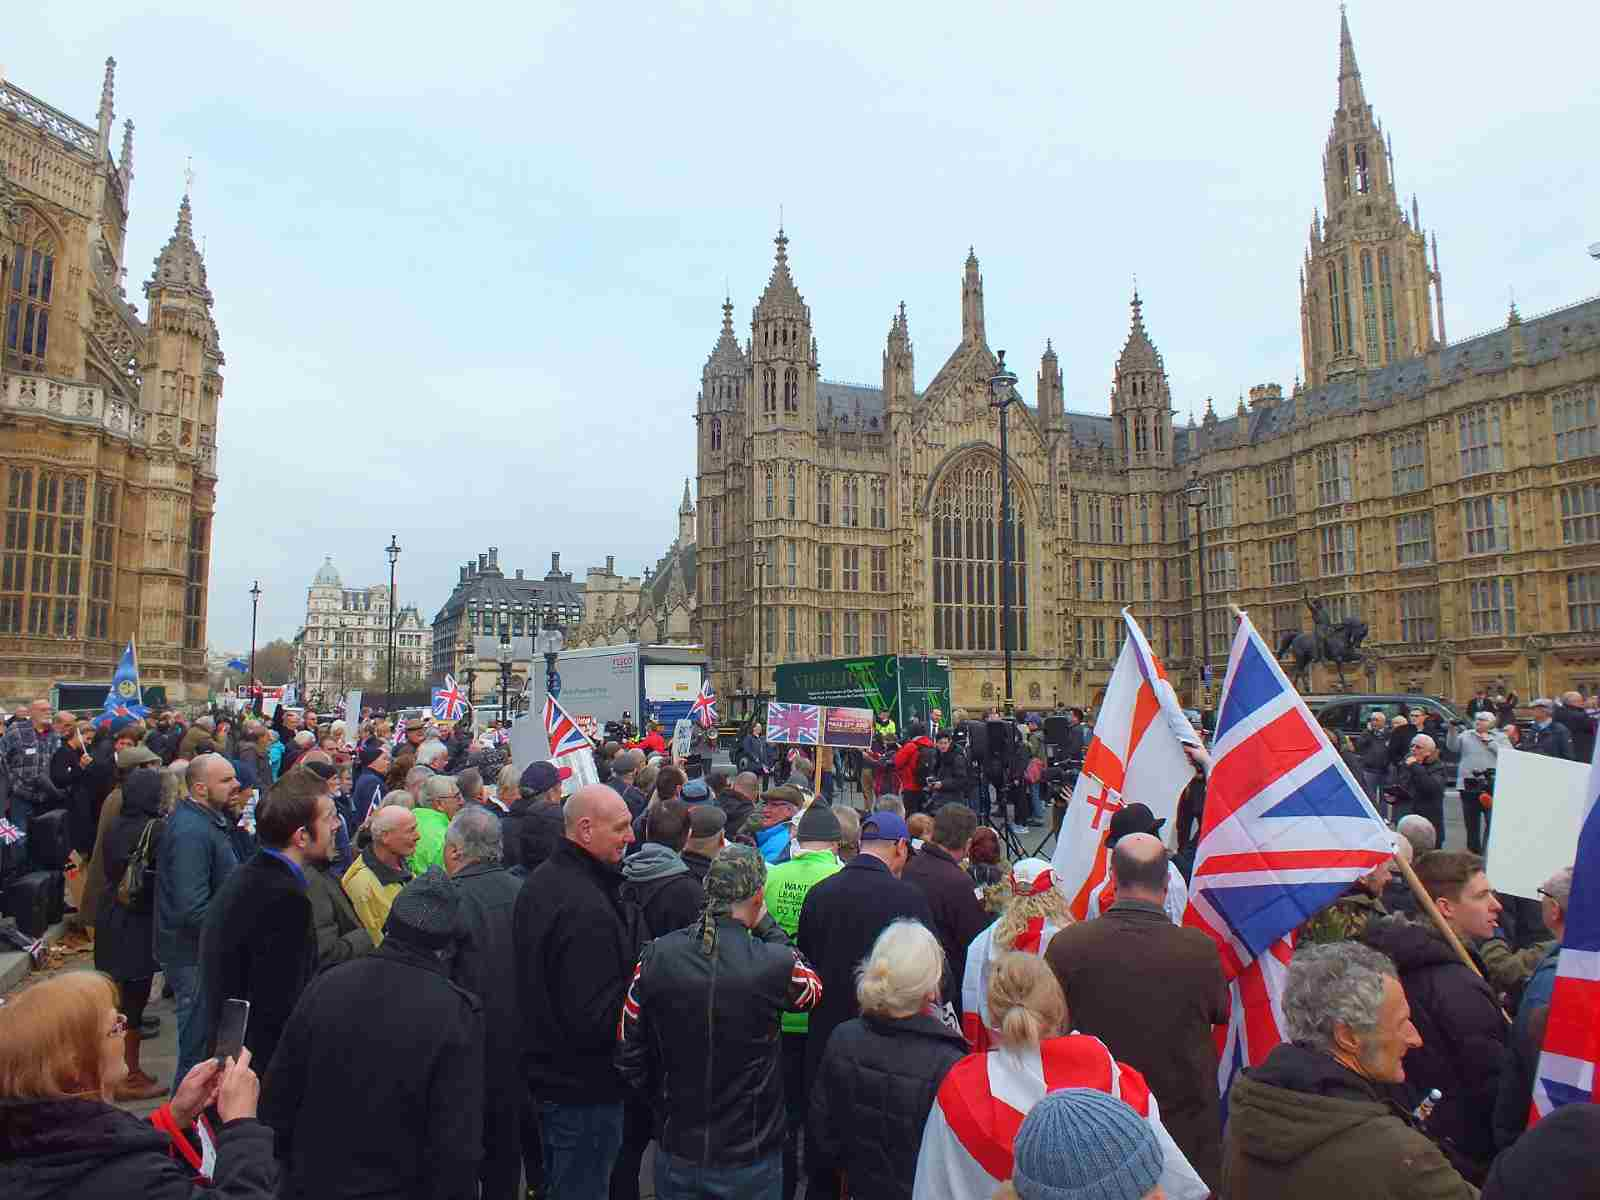 Brexit Rally outside Parliament November 23, 2016